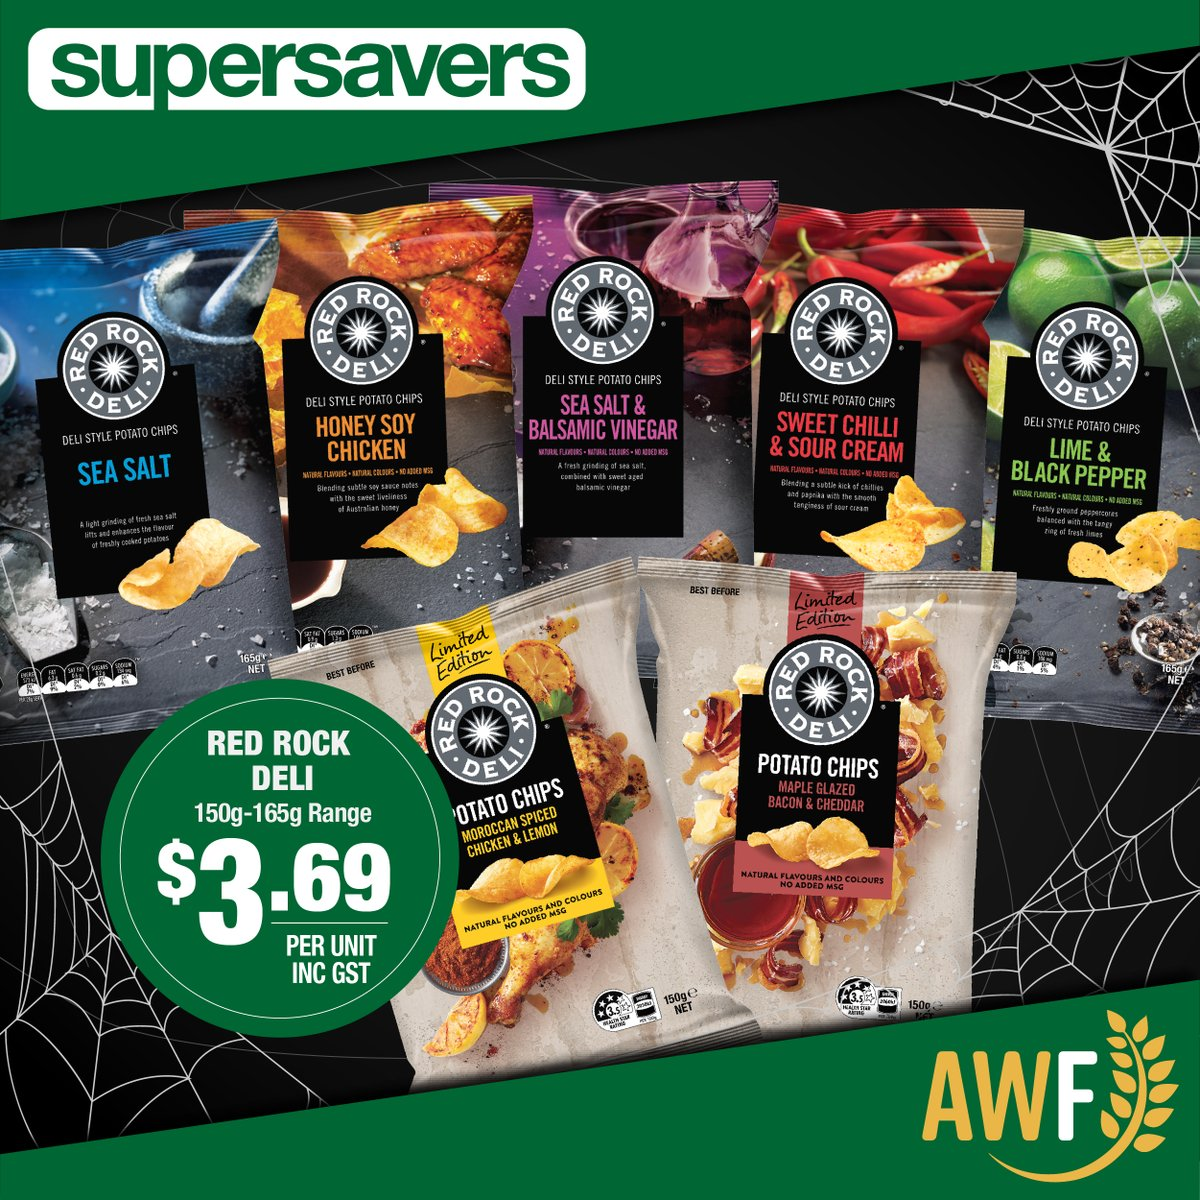 Red Rock Deli available in this months Spooky Savers for $3.29! View it online: https://t.co/4JQiBKD4hX ------------- 📞 Call us: (08) 9041 1424 📧 Email: sales@allwaysfoods.com.au #supersavers #AWF #AllwaysFoods #warehouse #merredin https://t.co/CdsQuZV1ru